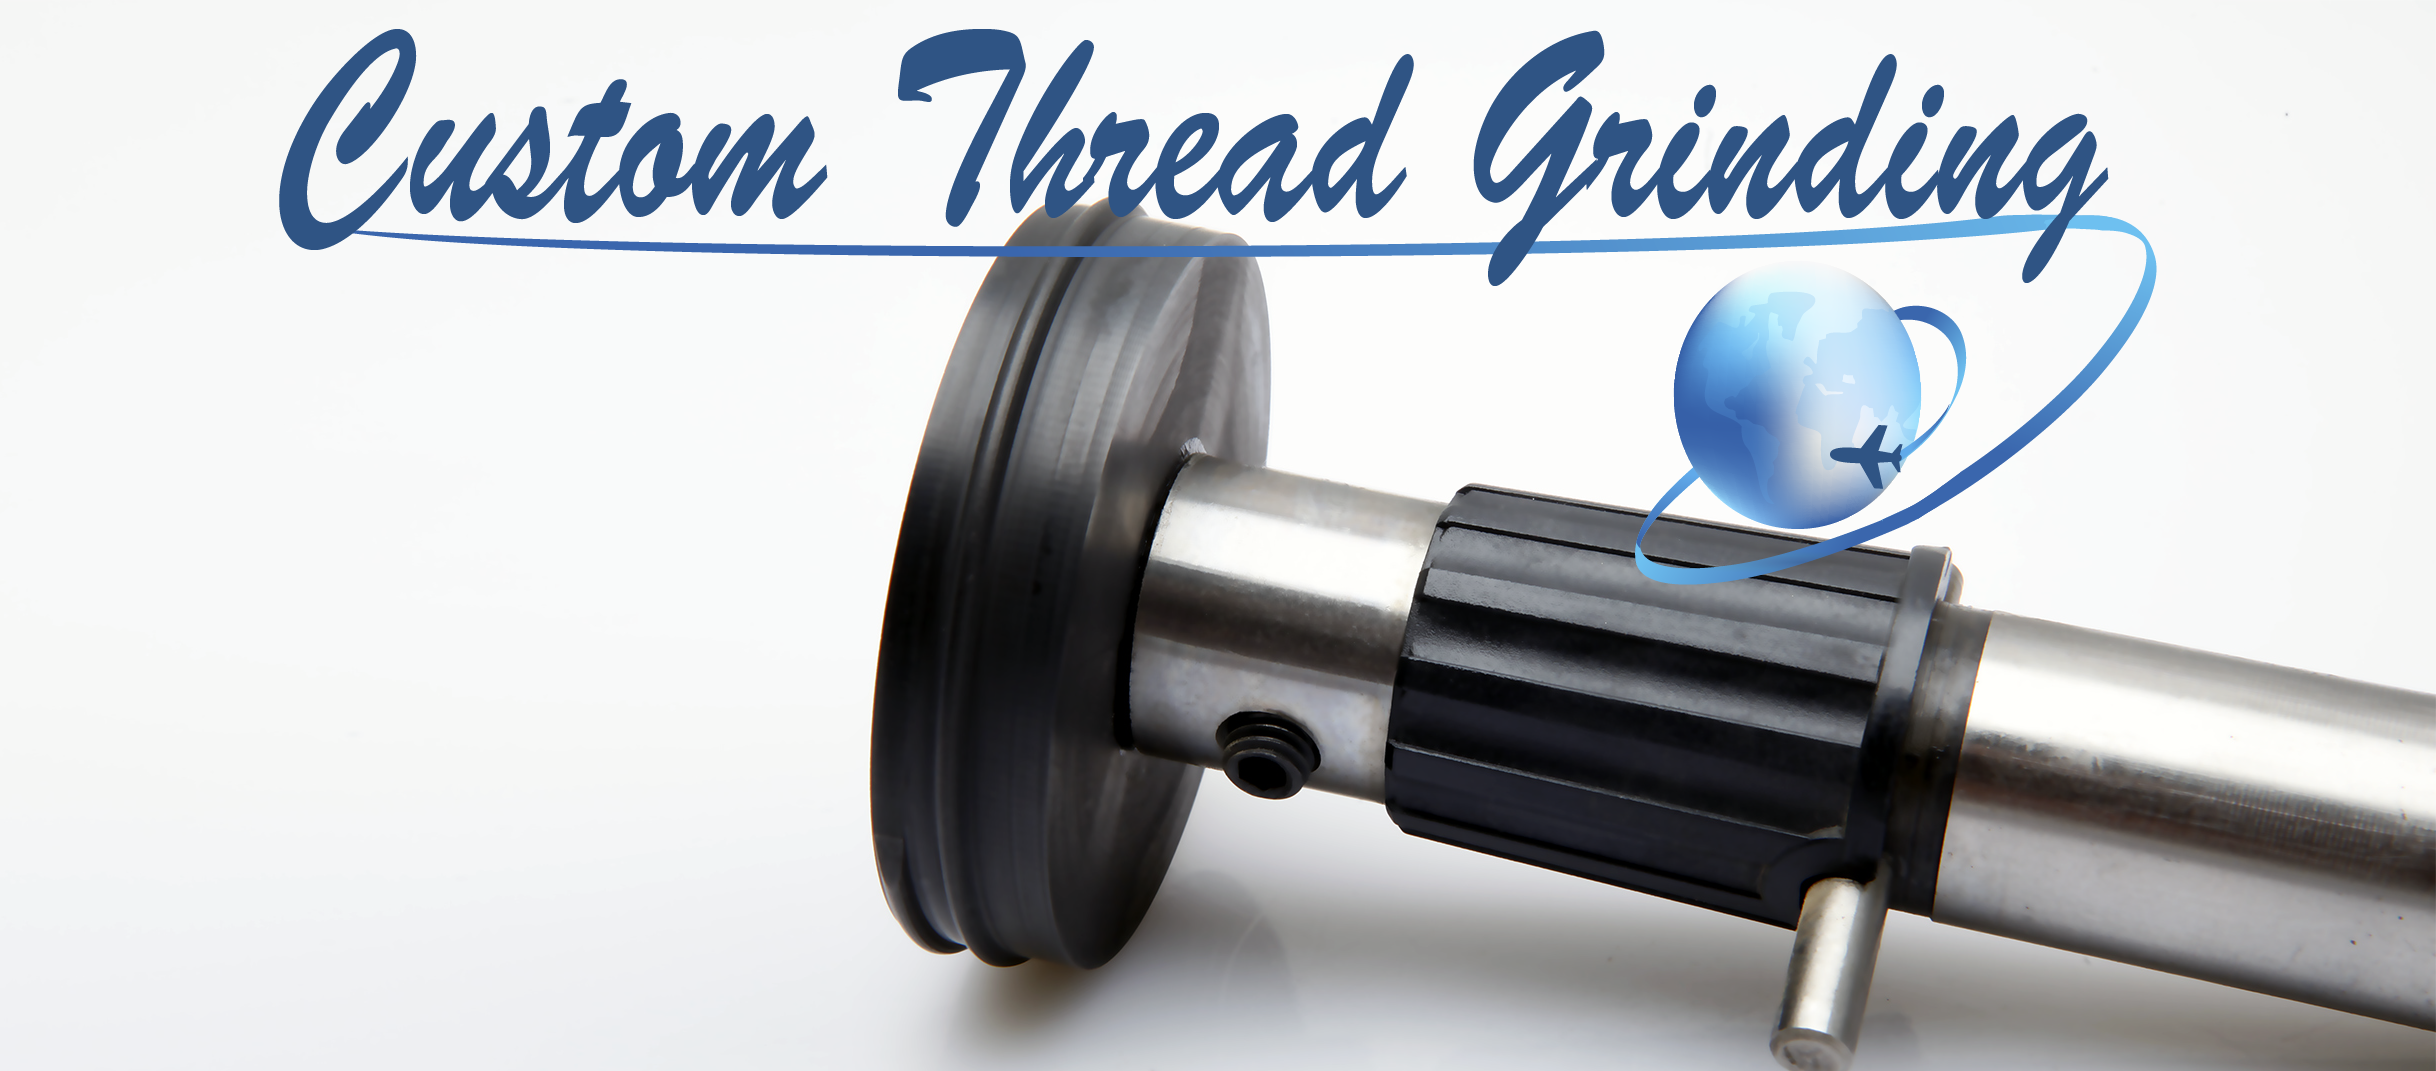 Custom Thread Grinding